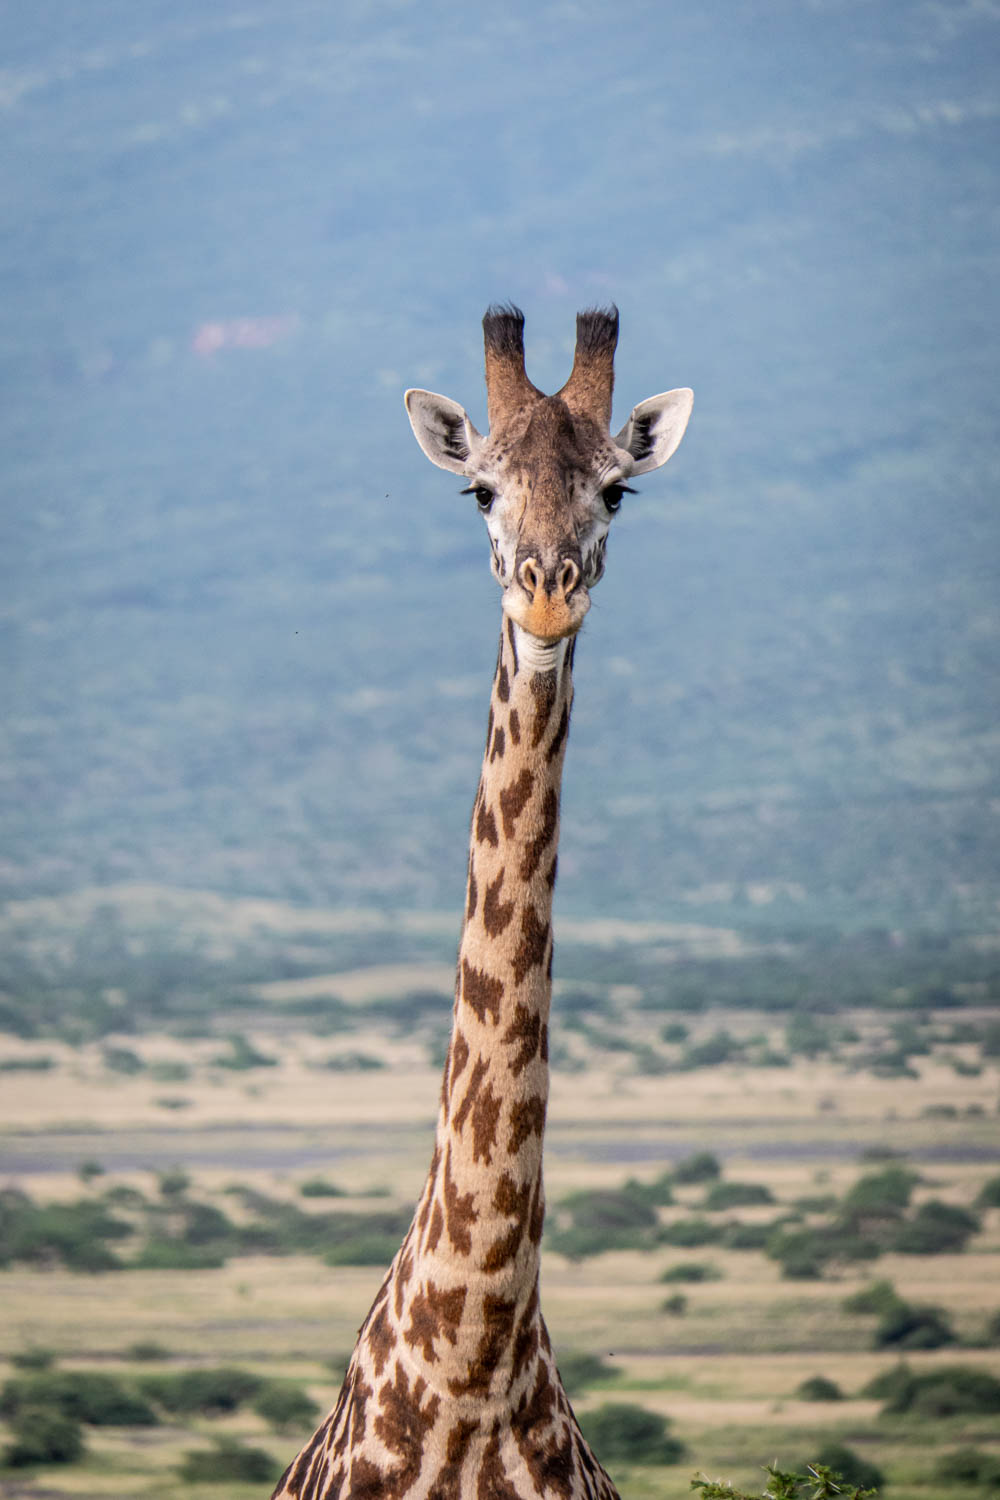 Tanzania national animal - giraffe - Tanzania travel guide - things to know before you go